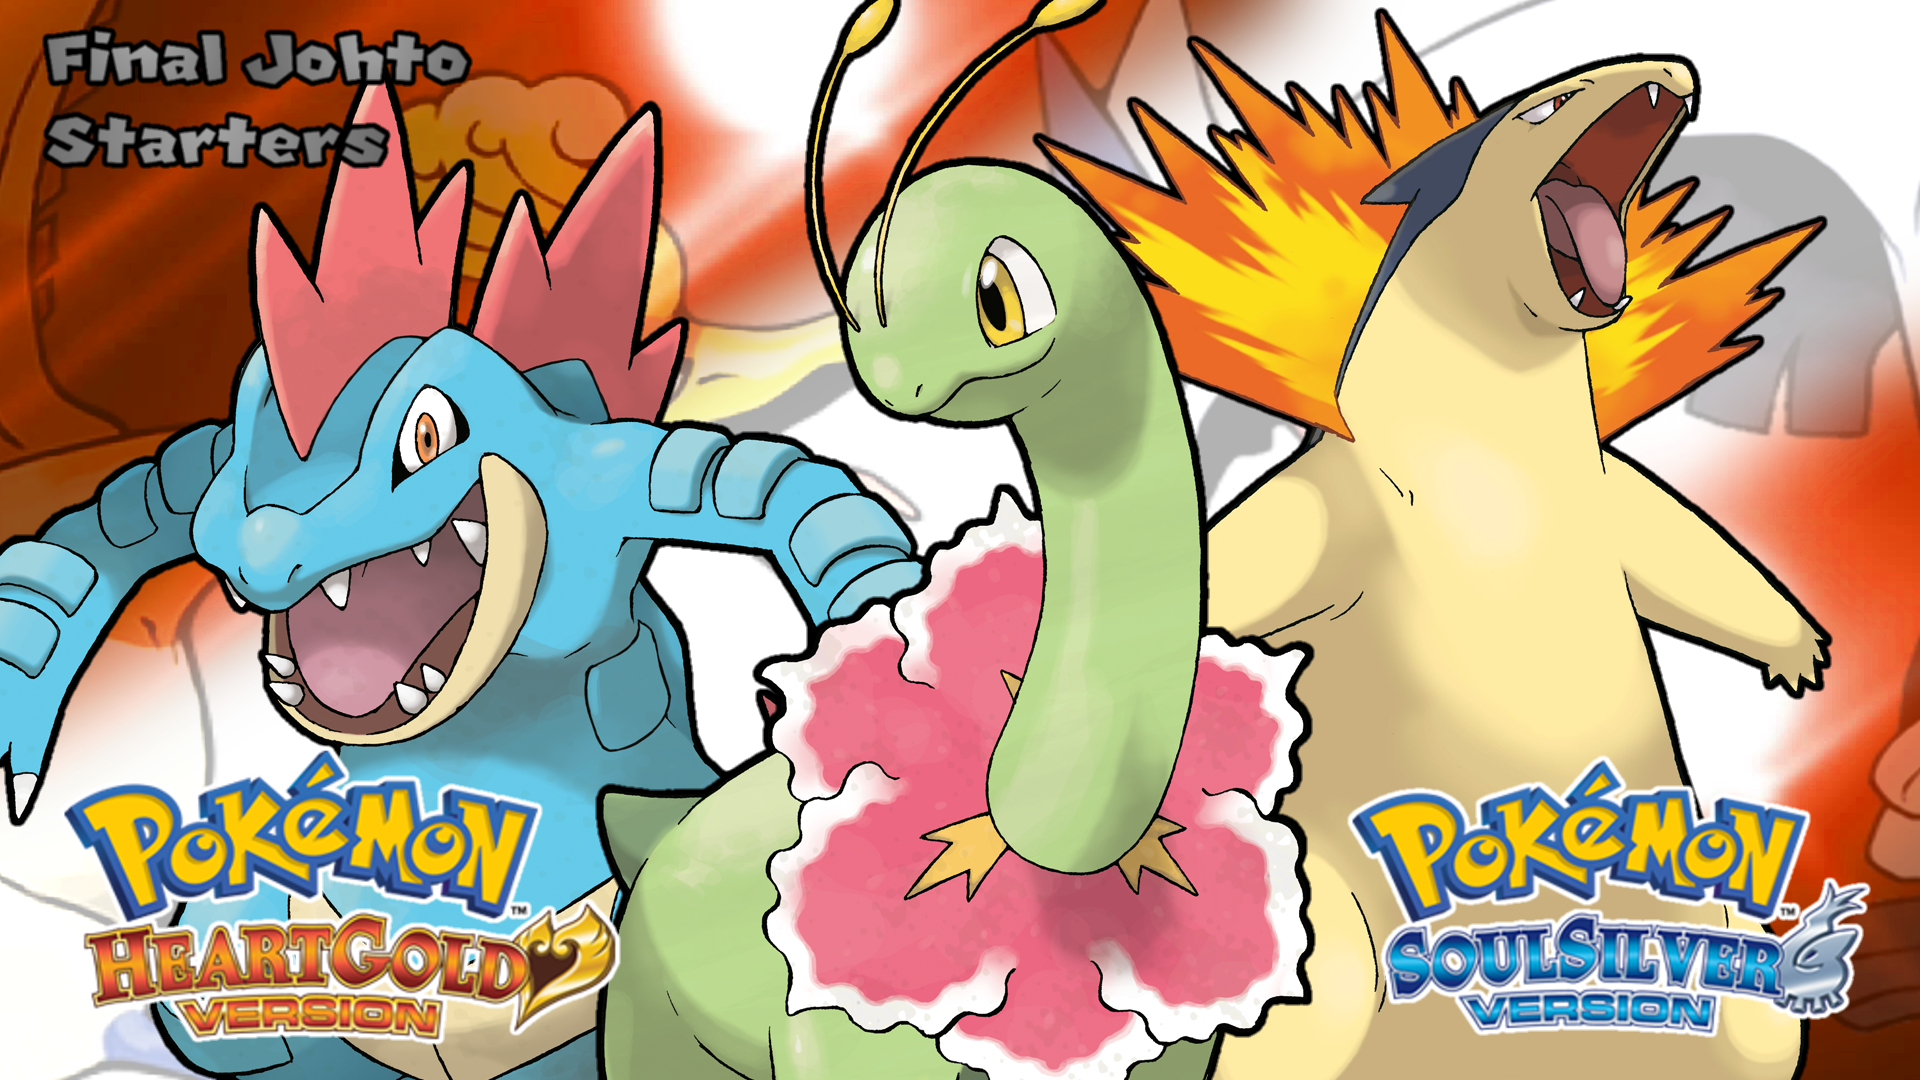 Pokemon Hgss Final Johto Starters Wallpaper By Mattplaysvg On Deviantart